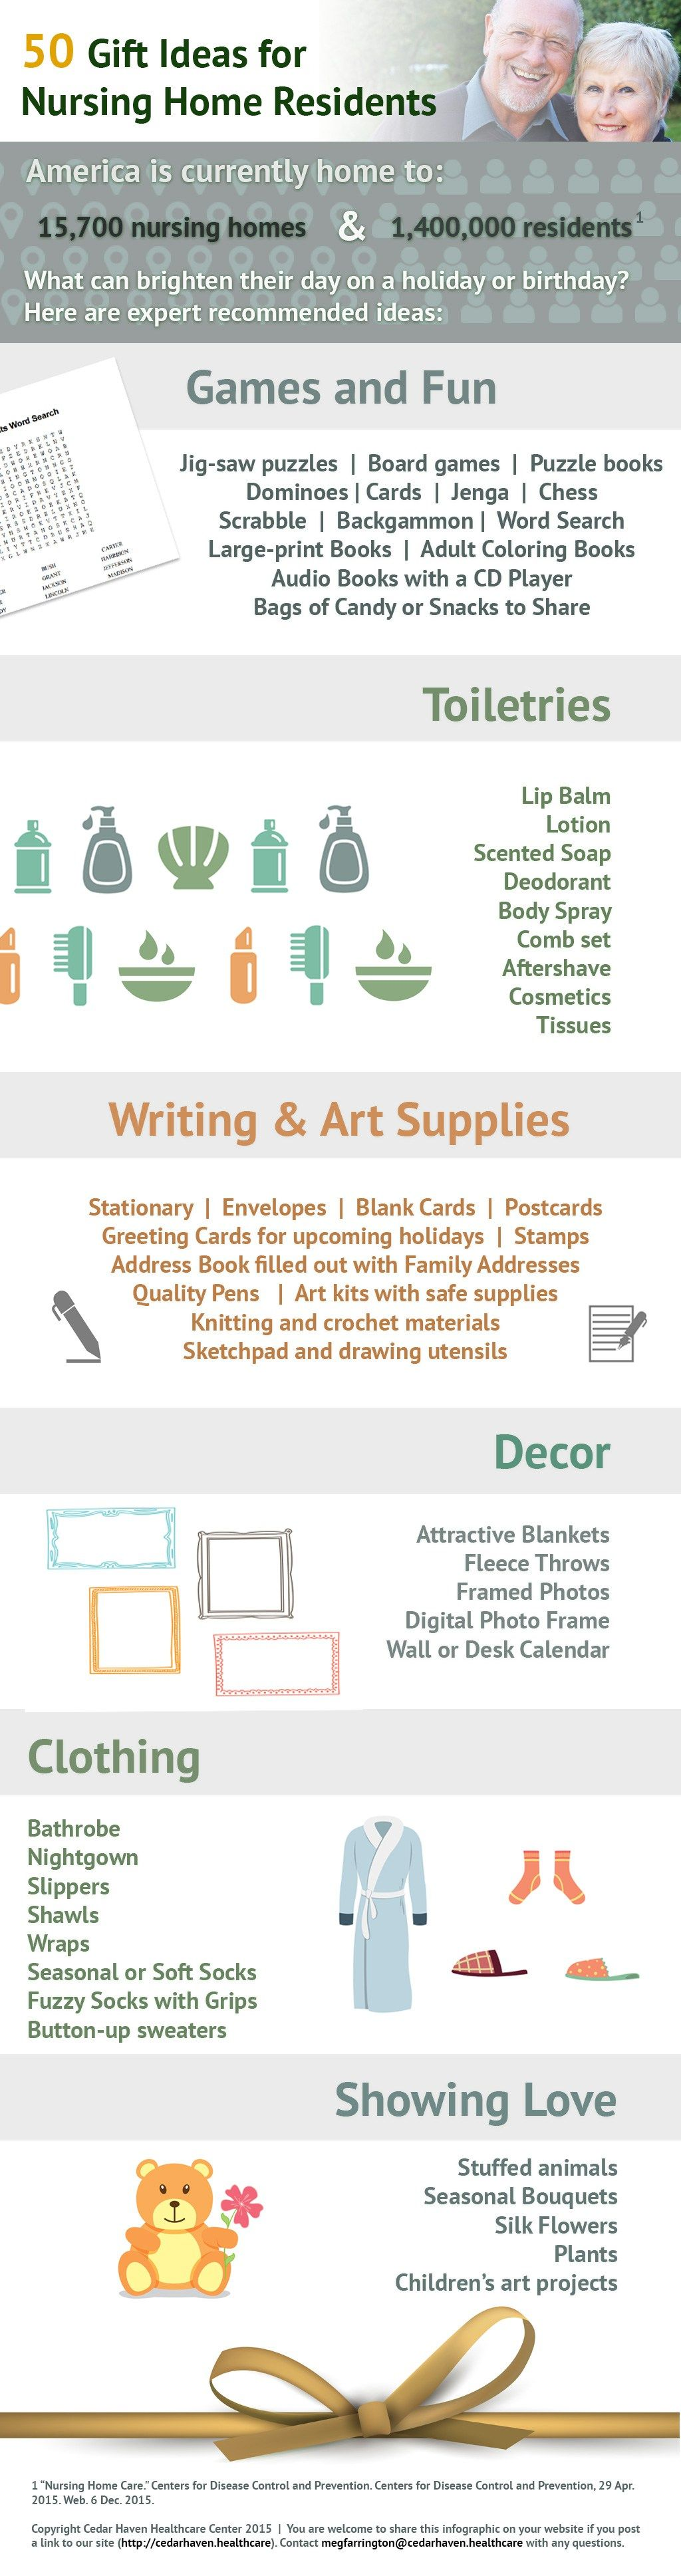 here are 50 gift ideas for nursing home residents these ideas are expert picked to make them smile infographic